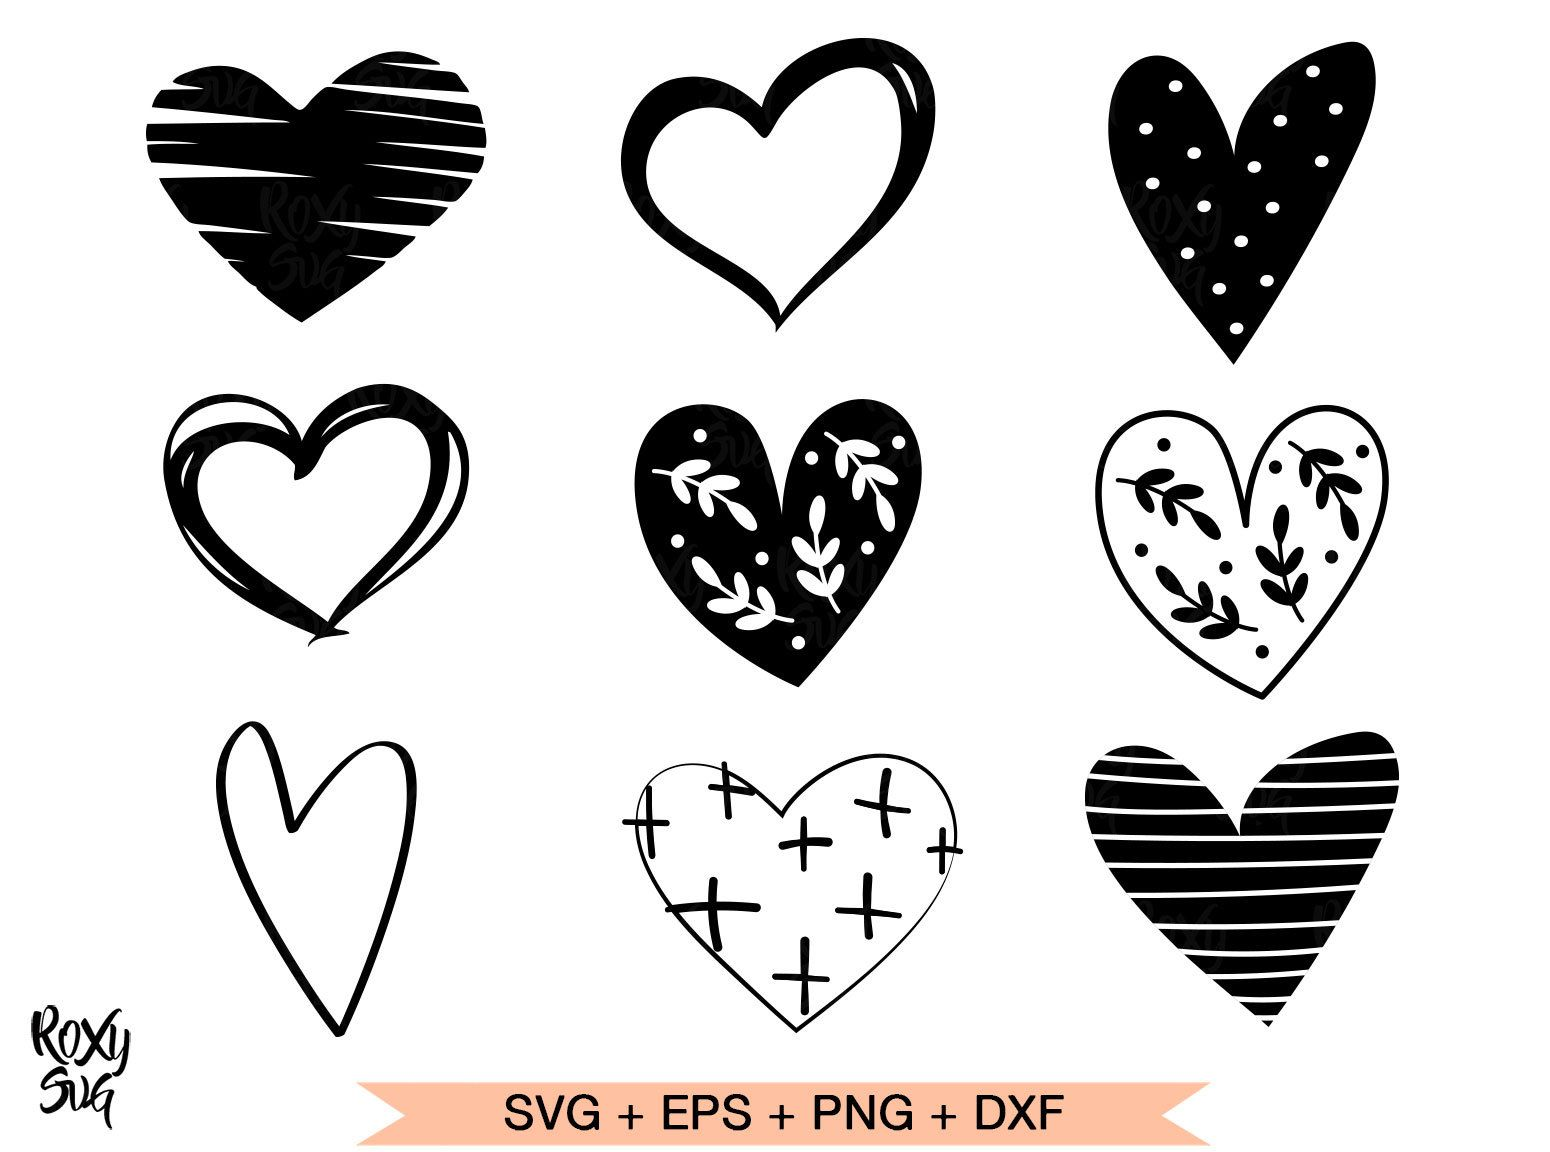 Heart Svg Hearts Svg Hearts Clipart Heart Shape Svg Hand Etsy In 2021 Valentine Svg Files Heart Hands Drawing Clip Art